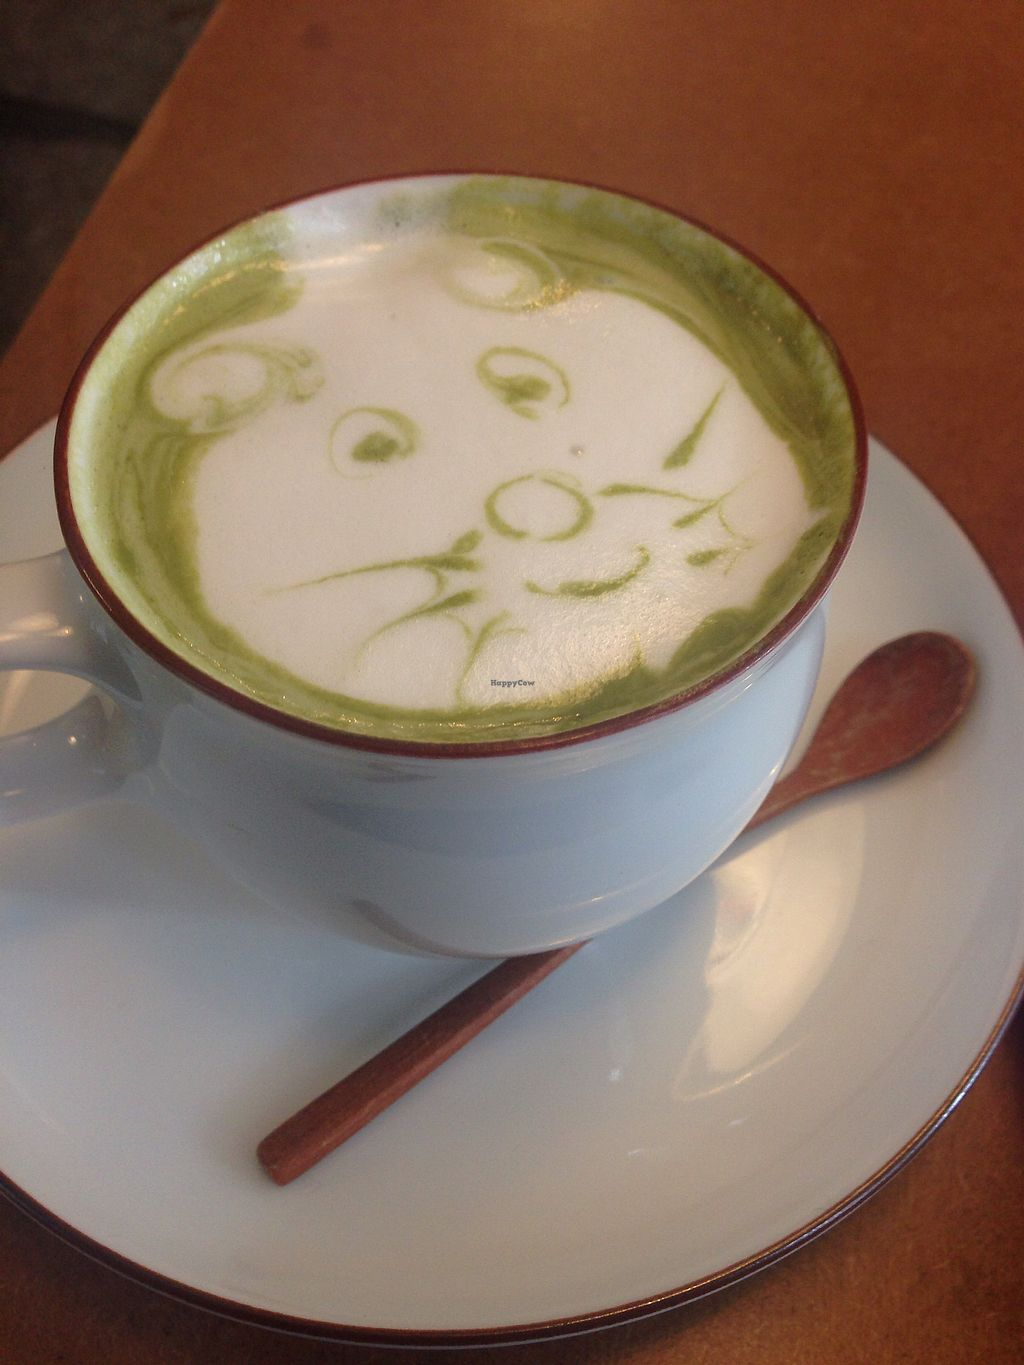 """Photo of MuYe - Mottainai Plant-Based Whole Food Cafe  by <a href=""""/members/profile/Lizjm"""">Lizjm</a> <br/>Matcha latte with homemade macadamia nut milk  <br/> February 1, 2018  - <a href='/contact/abuse/image/62356/353432'>Report</a>"""